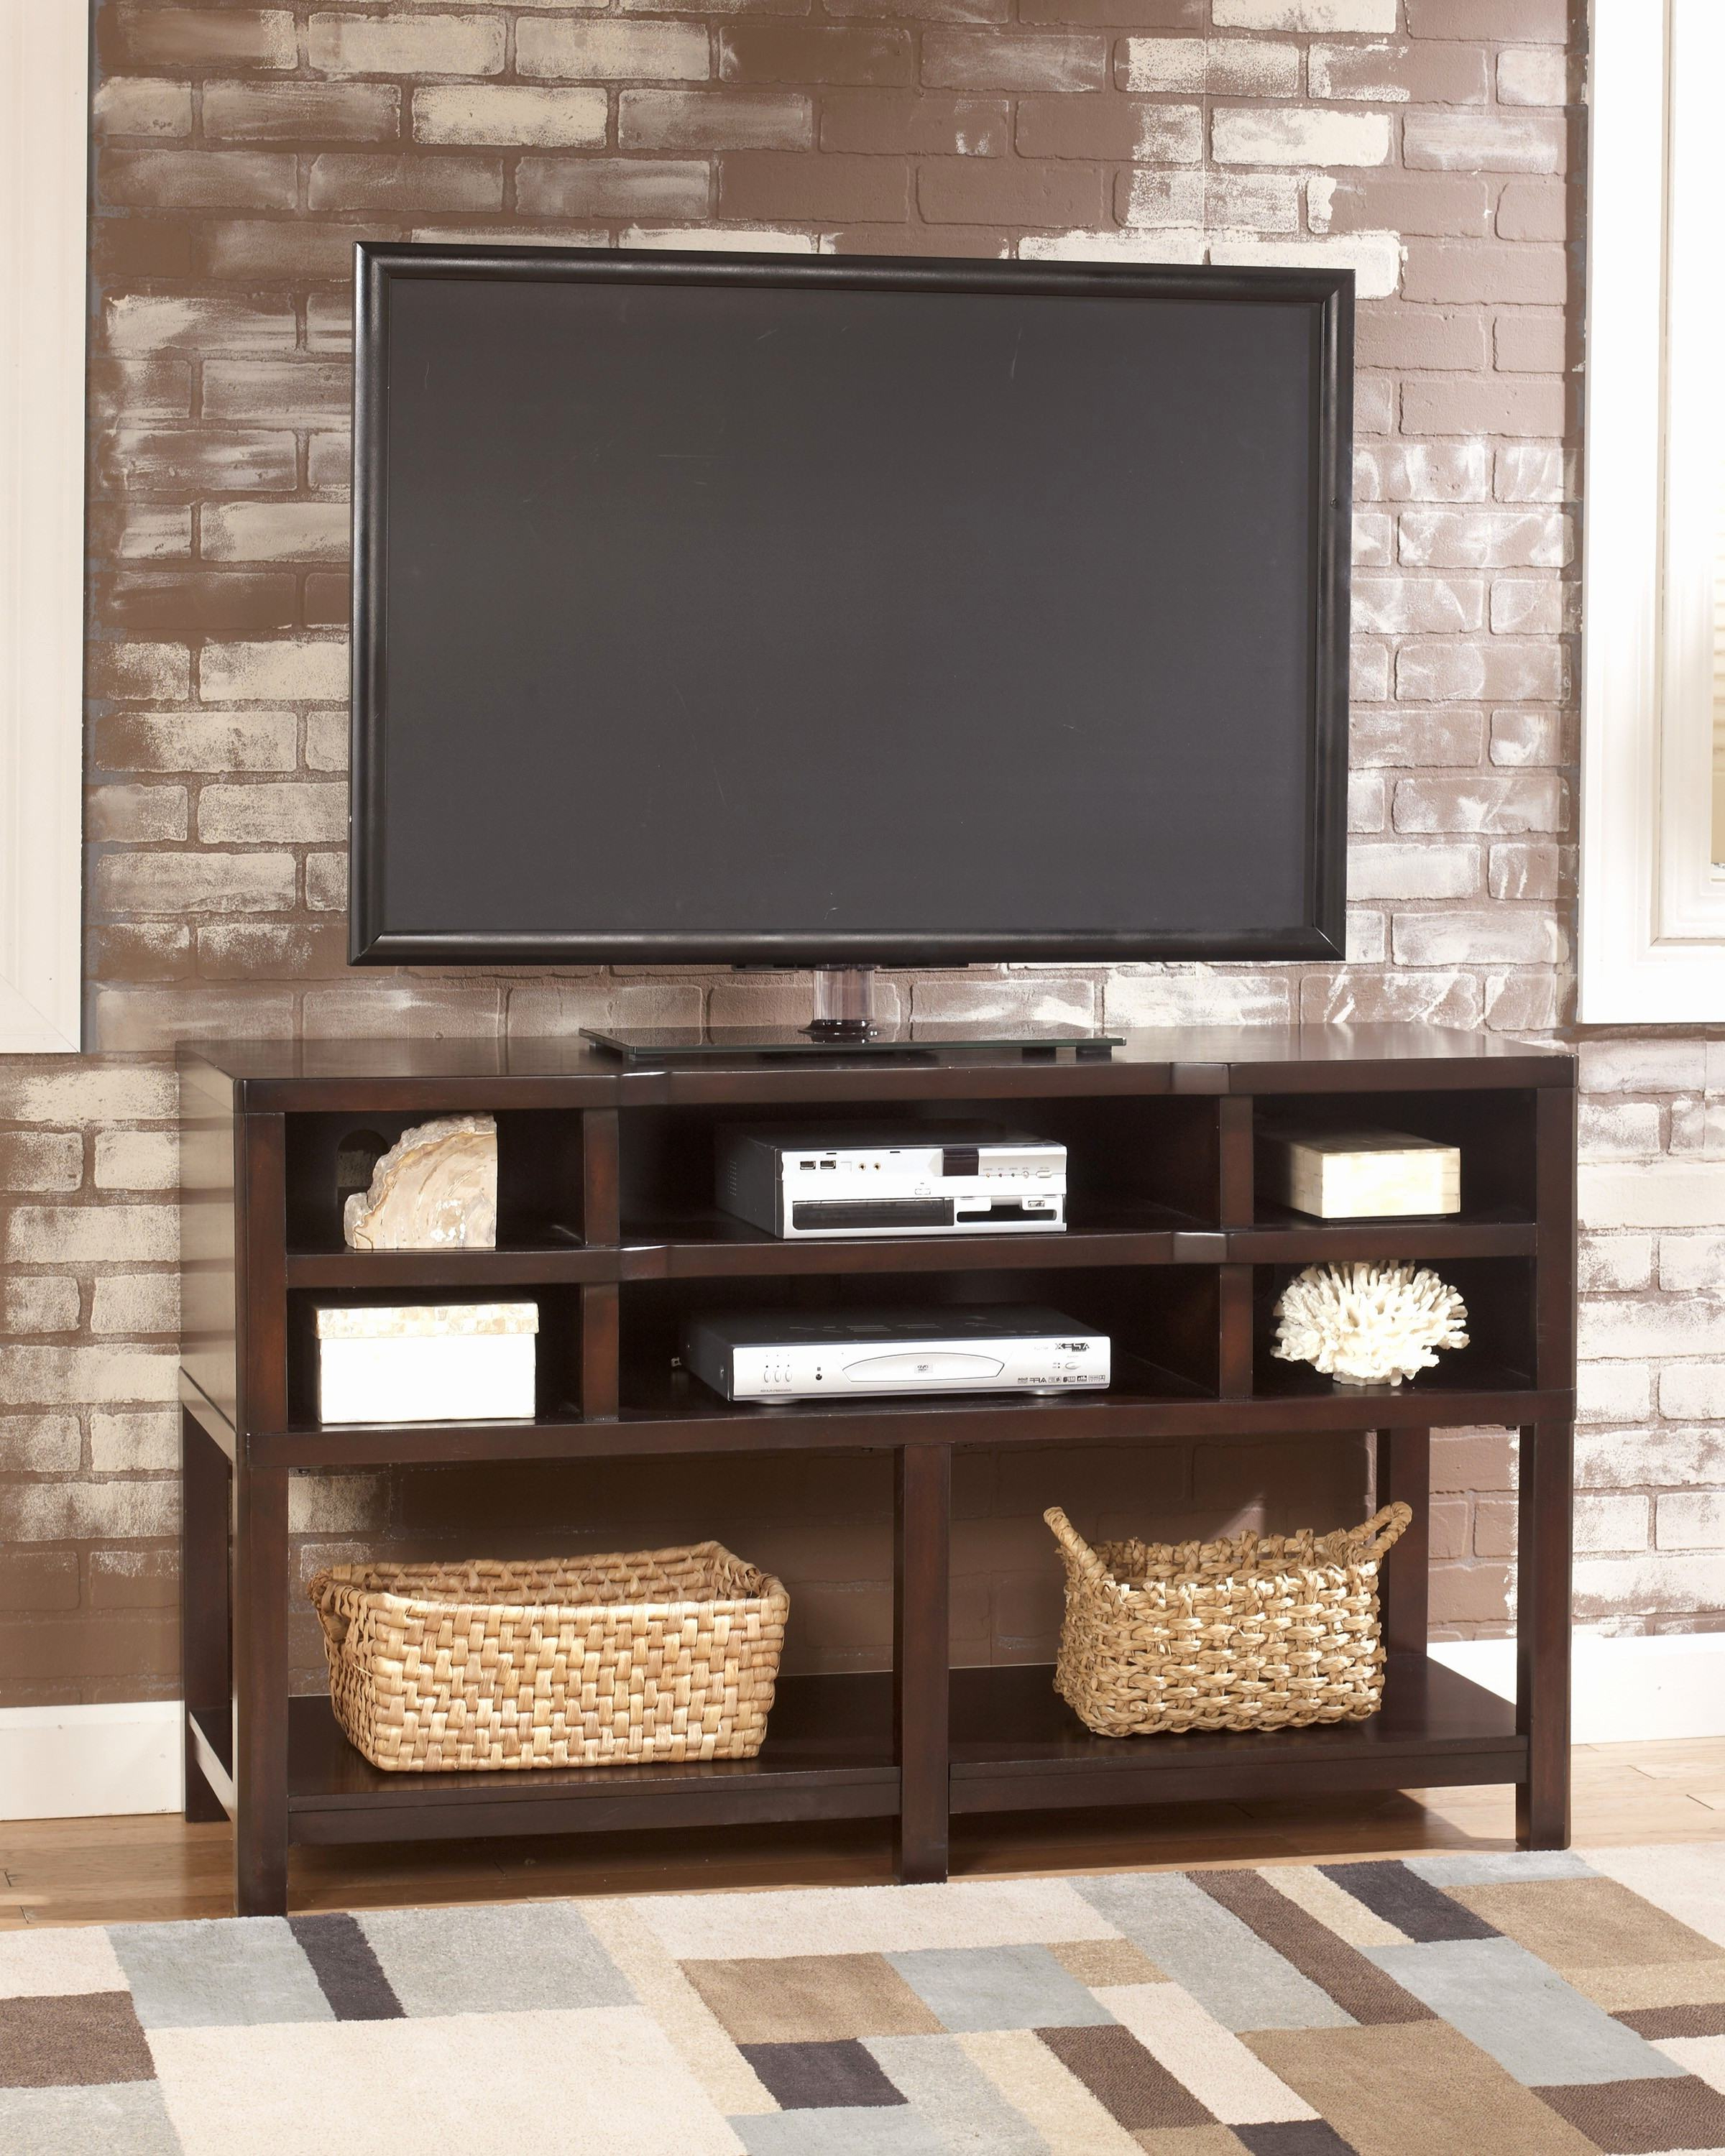 Clear Acrylic Tv Stands With Regard To Trendy Lucite Tv Stand Luxurious Ideas For Living Room Luxury Clear Acrylic (View 8 of 20)